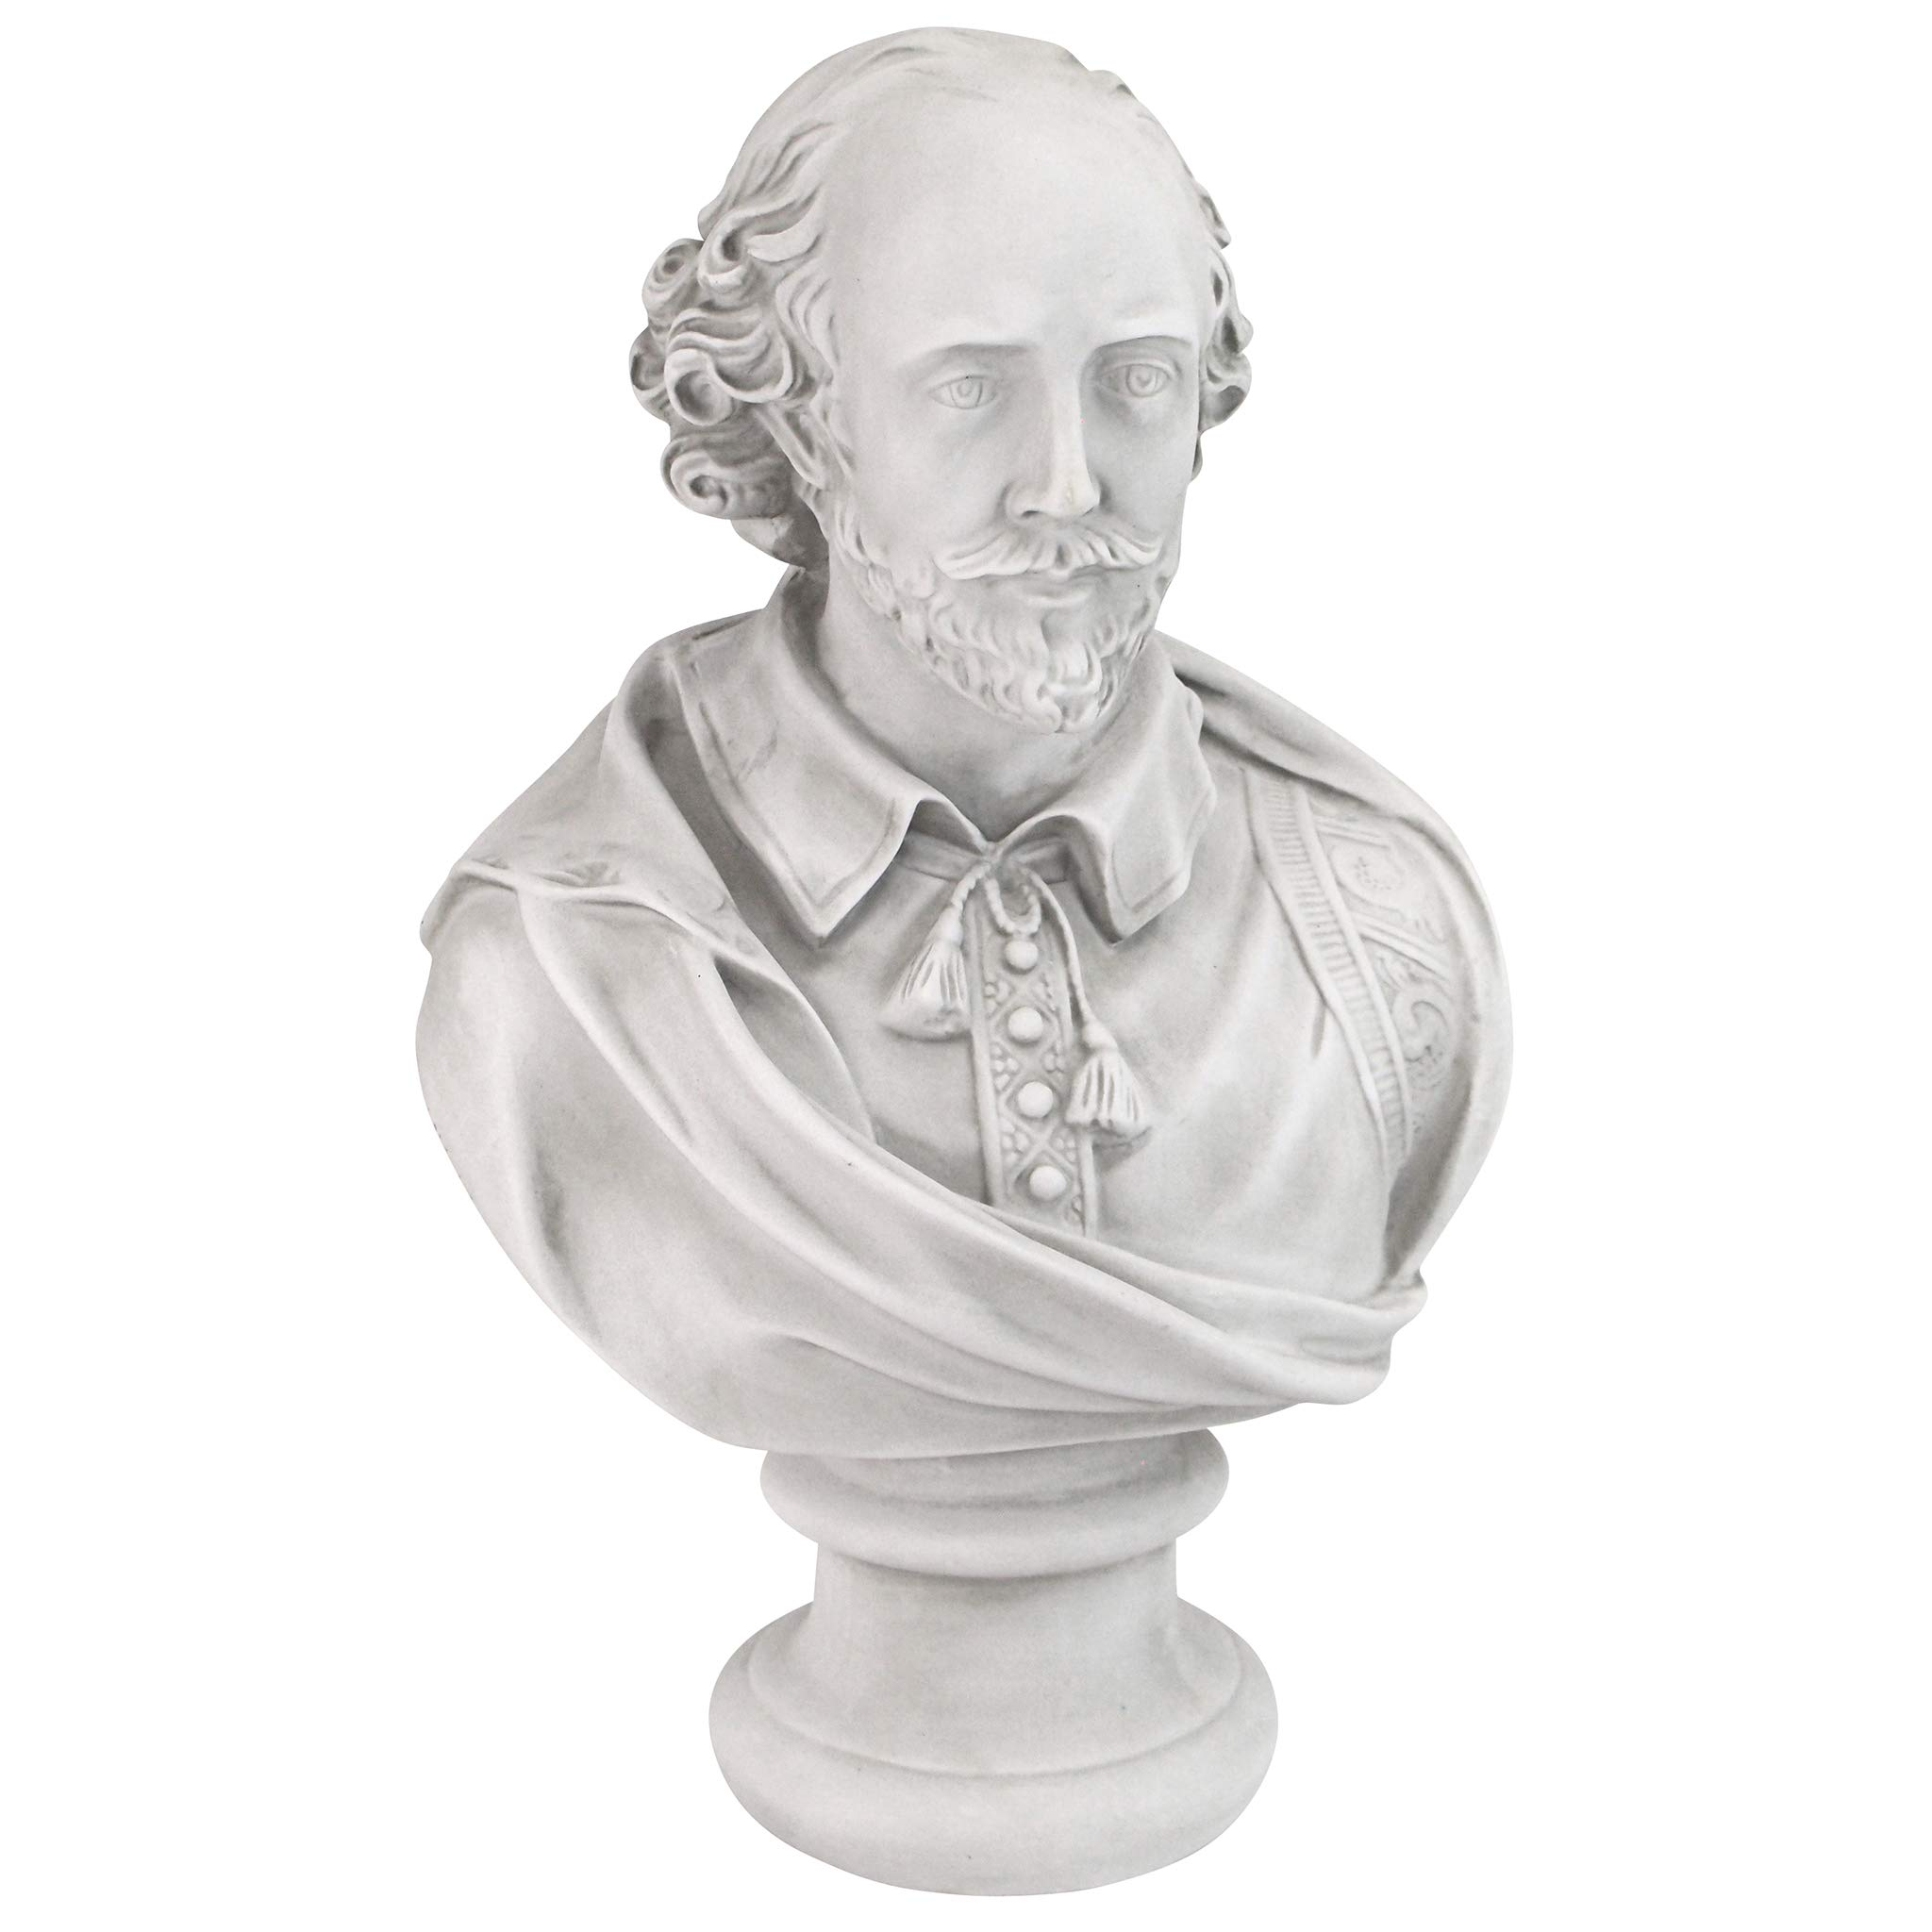 Design Toscano William Shakespeare Bust Statue, Large, 18 Inch, Polyresin, Antique Stone